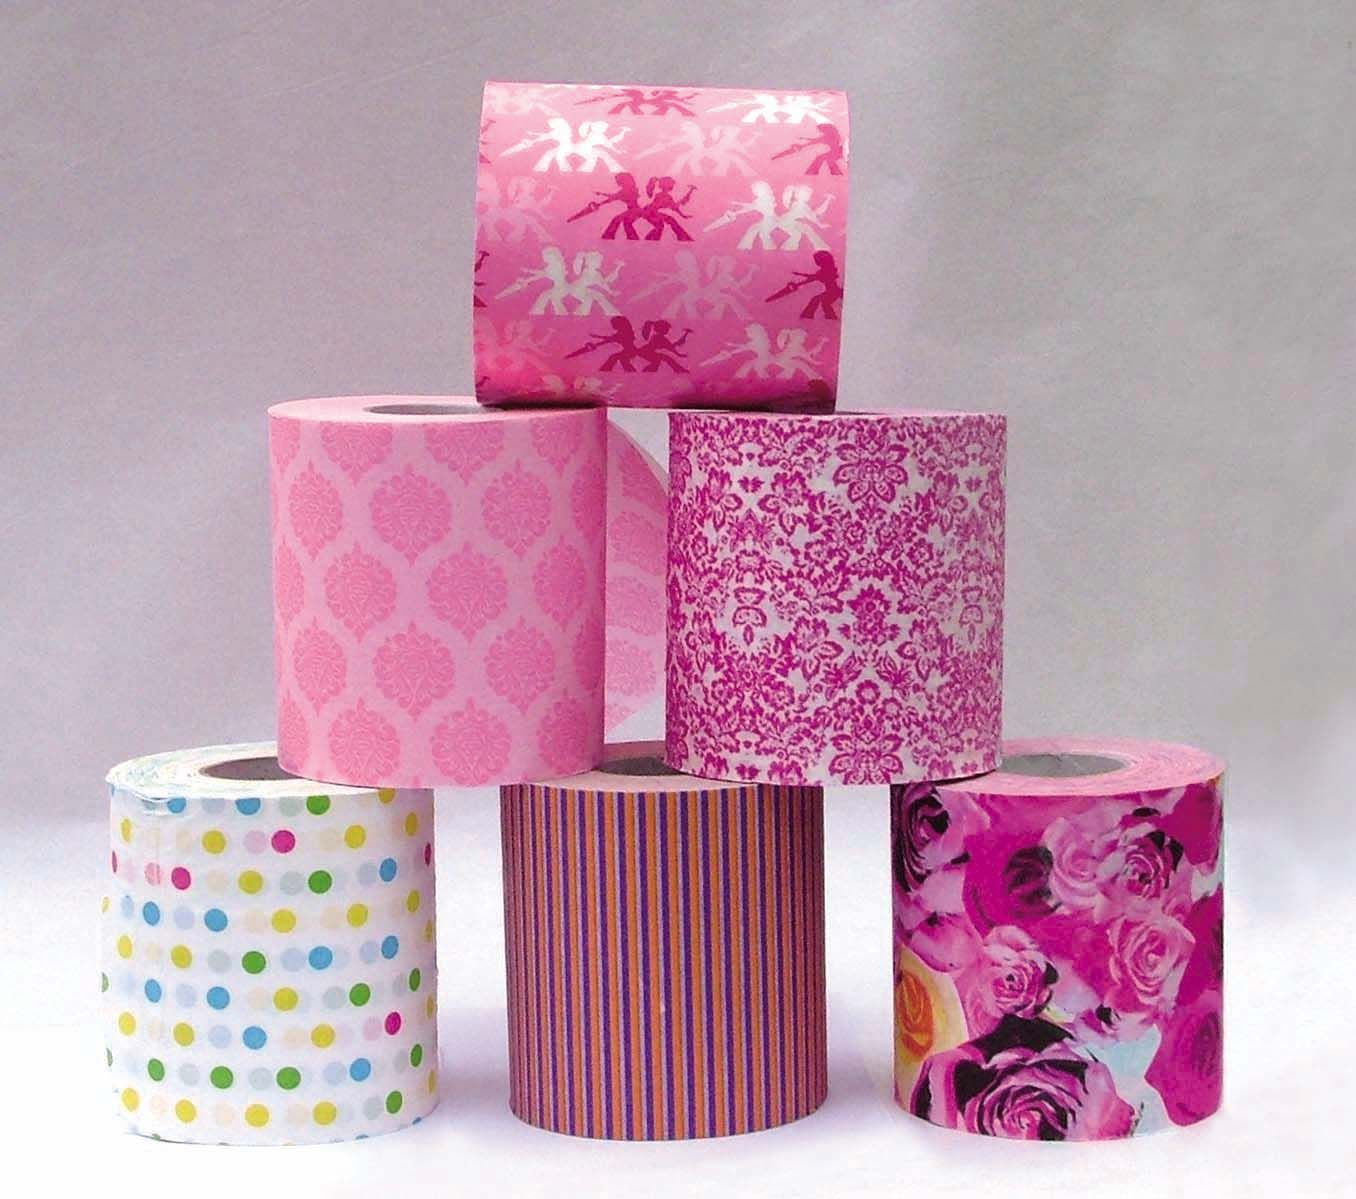 Pin by Lorie McClenin on Pink Stuff | Toilet paper origami ...